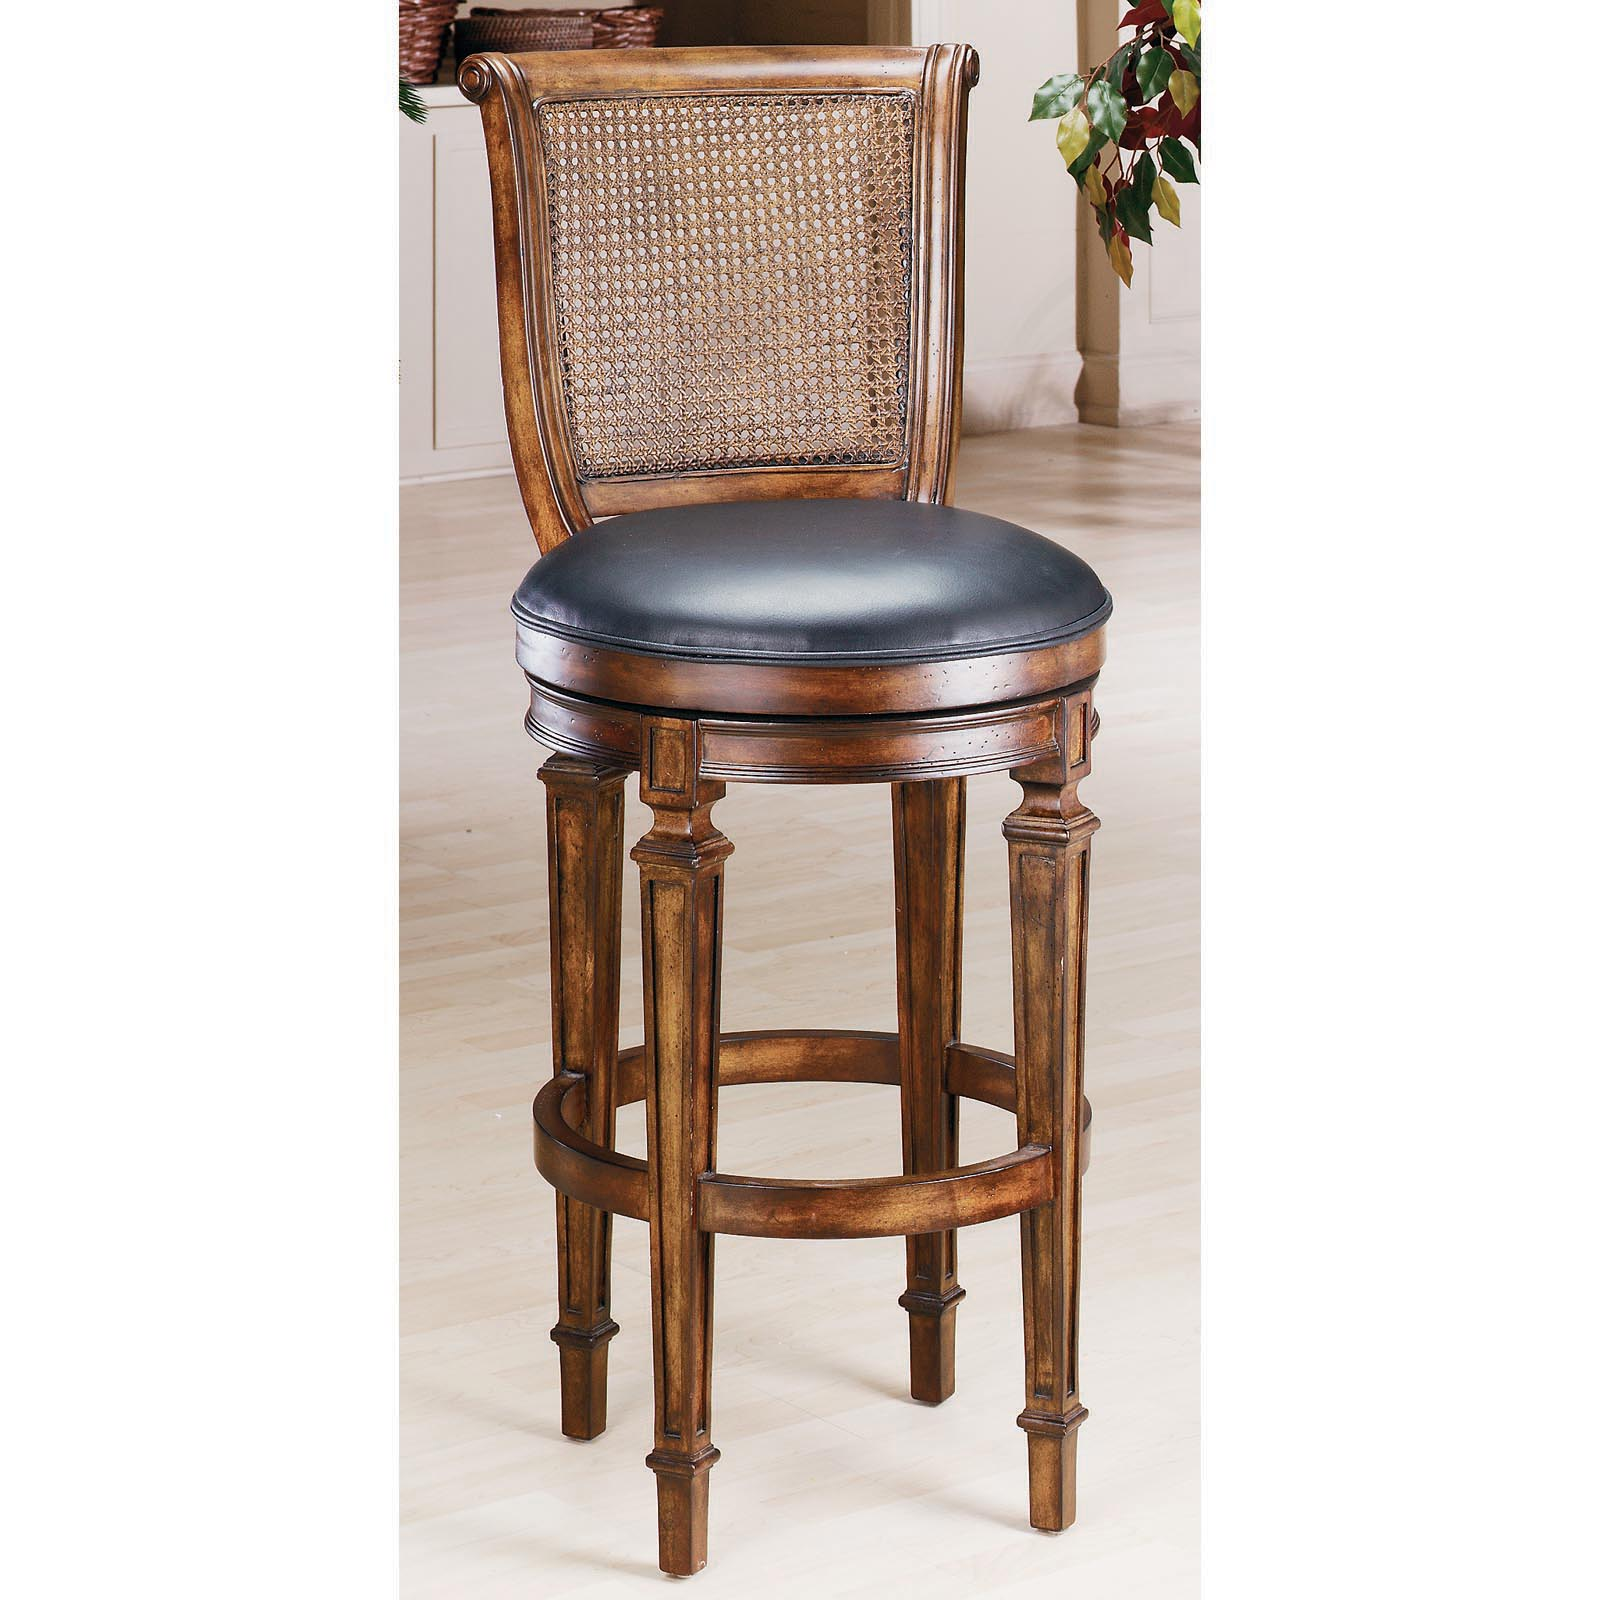 Cane Back Swivel Counter Stool | Hayneedle  sc 1 st  Hayneedle & Hillsdale Dalton 24 in. Cane Back Swivel Counter Stool | Hayneedle islam-shia.org